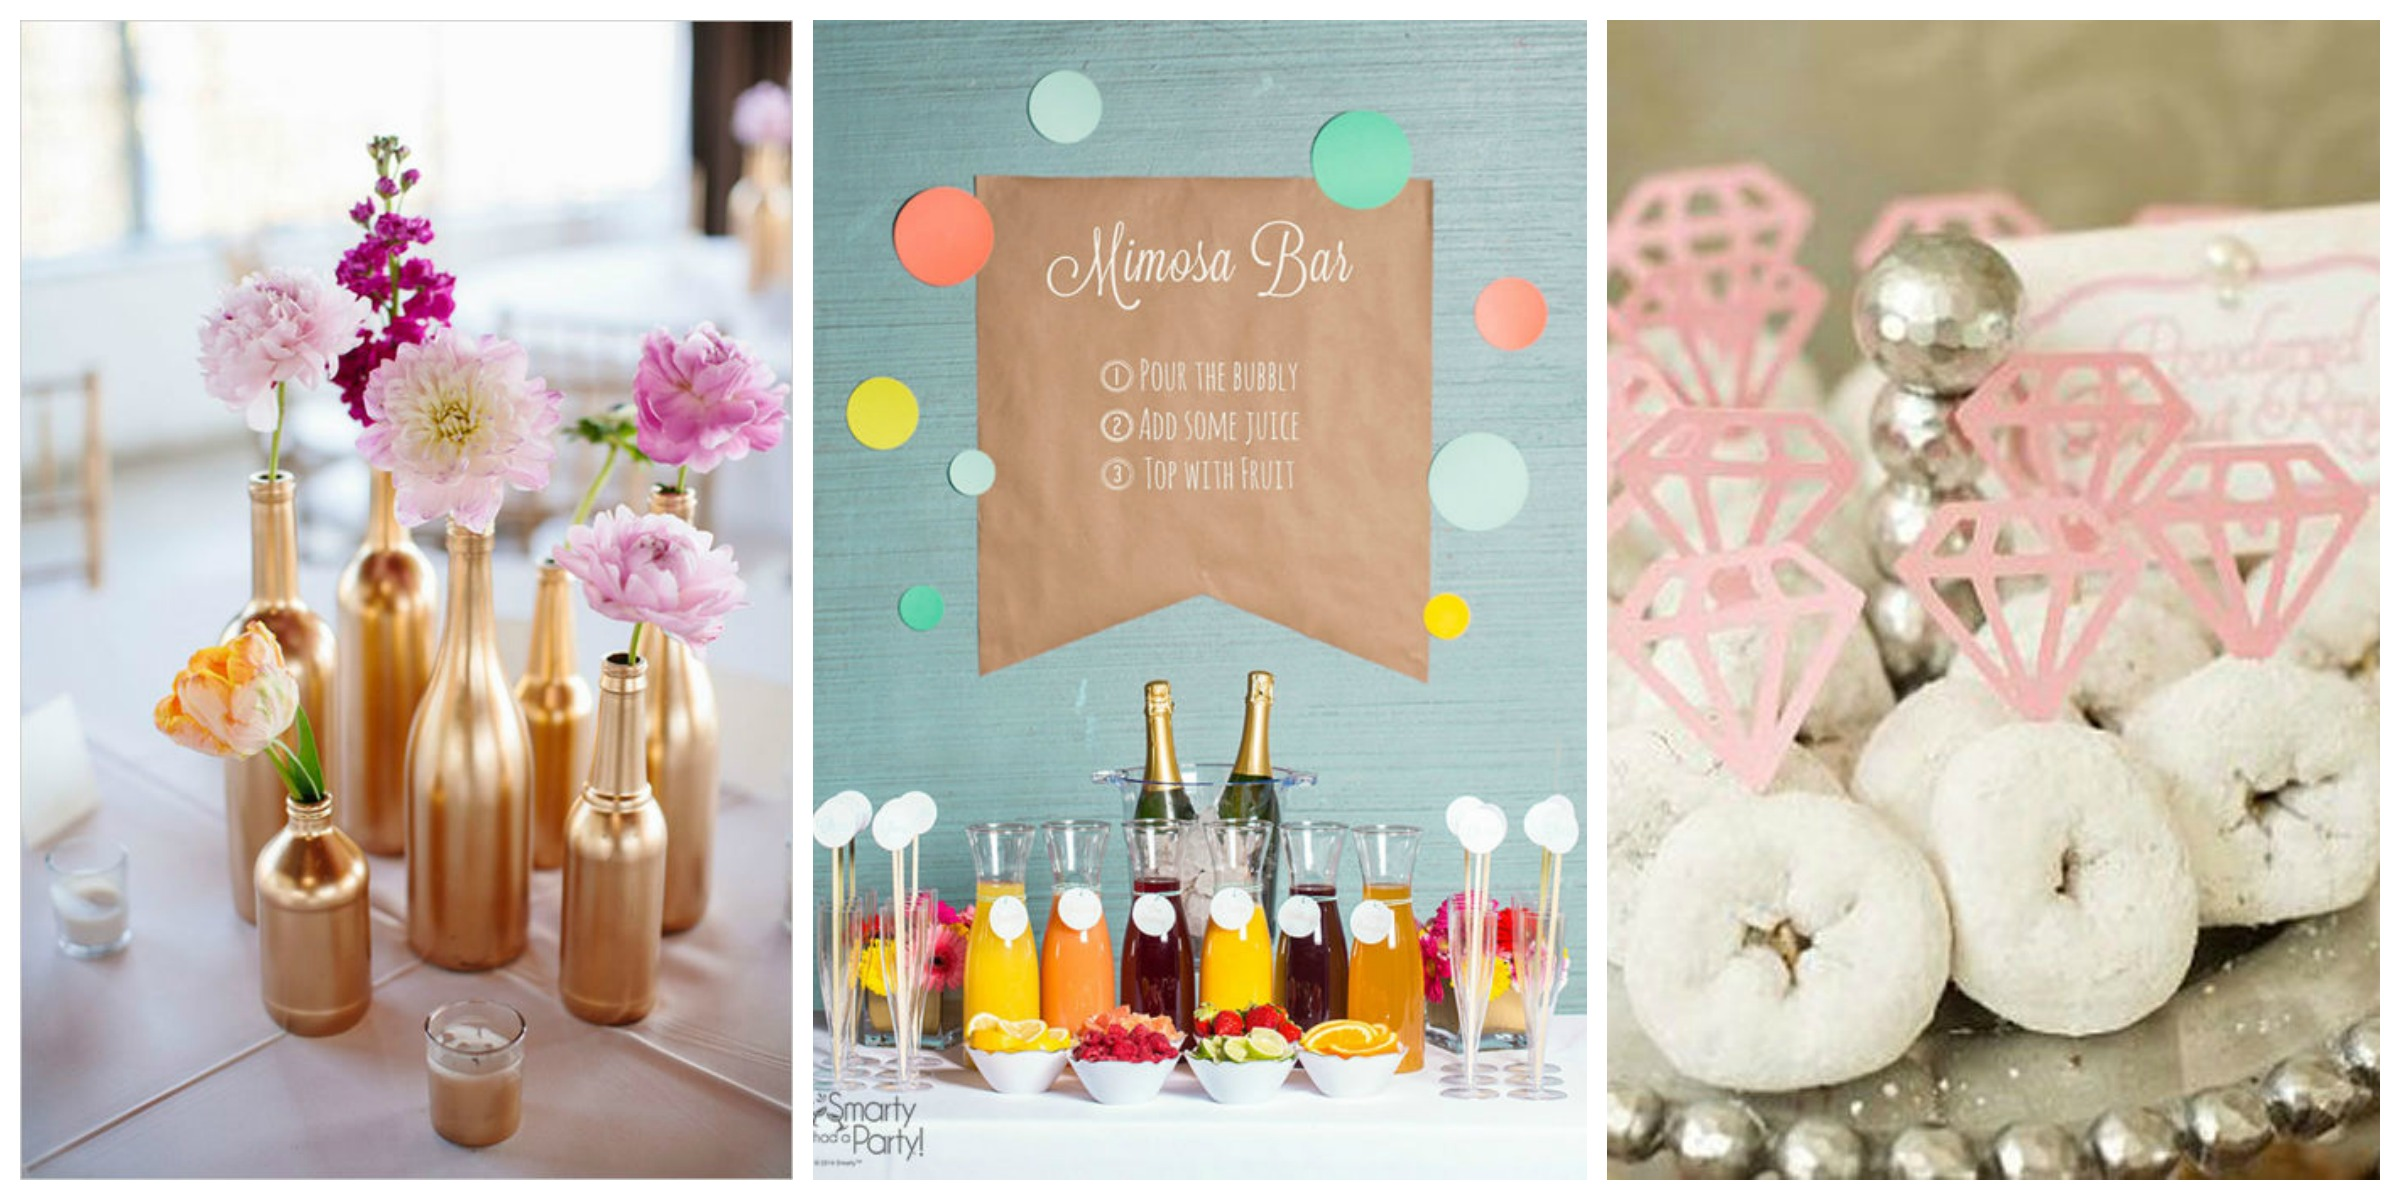 40 best bridal shower ideas fun themes food and for How to decorate for a bridal shower at home